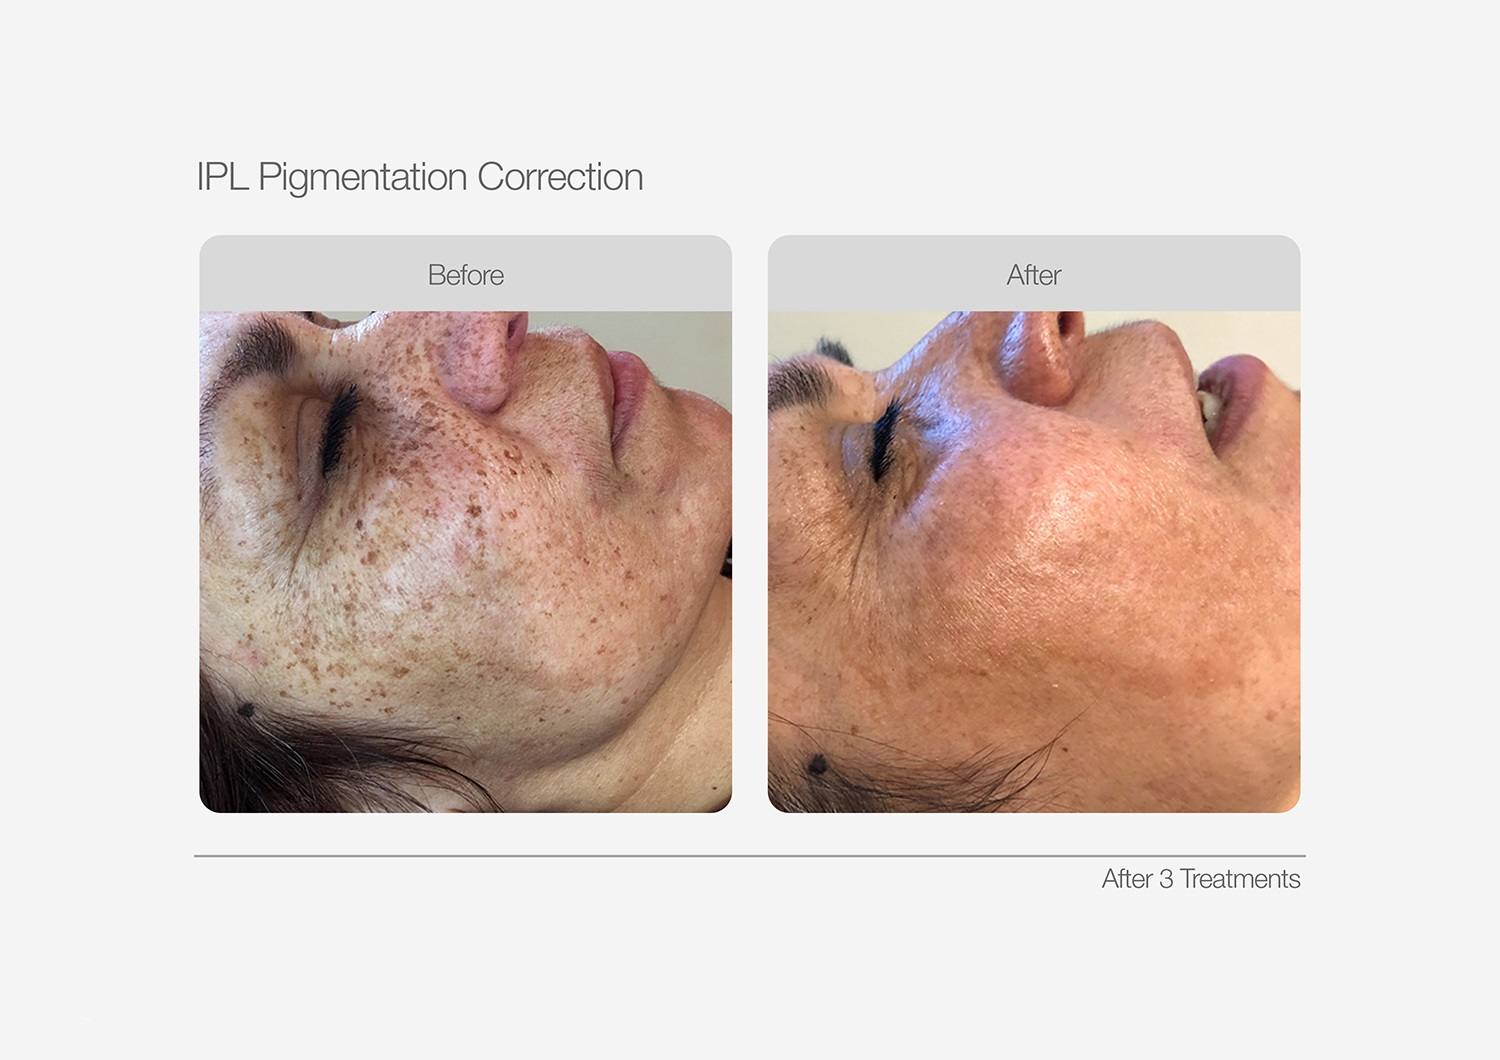 IPL-Pigmentation-Correction-Before-After-07